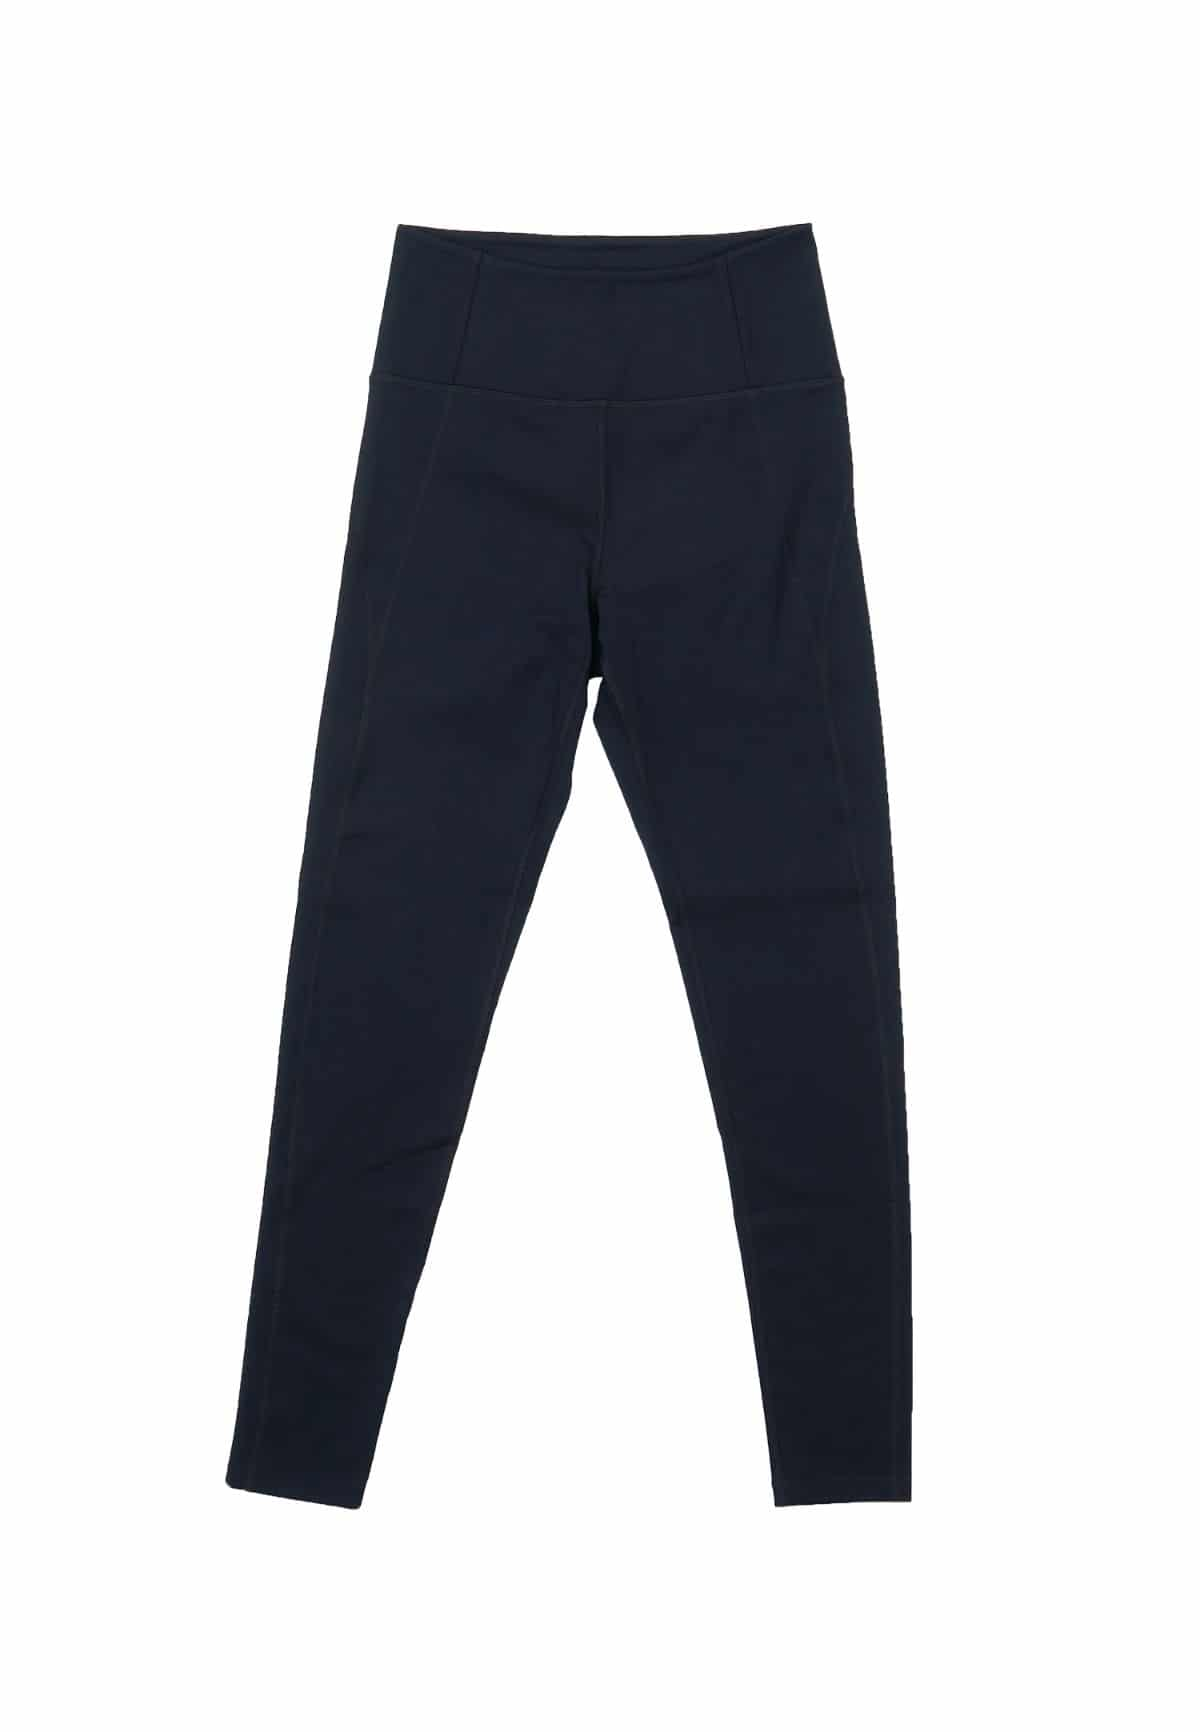 high-rise leggings girlfriend collective